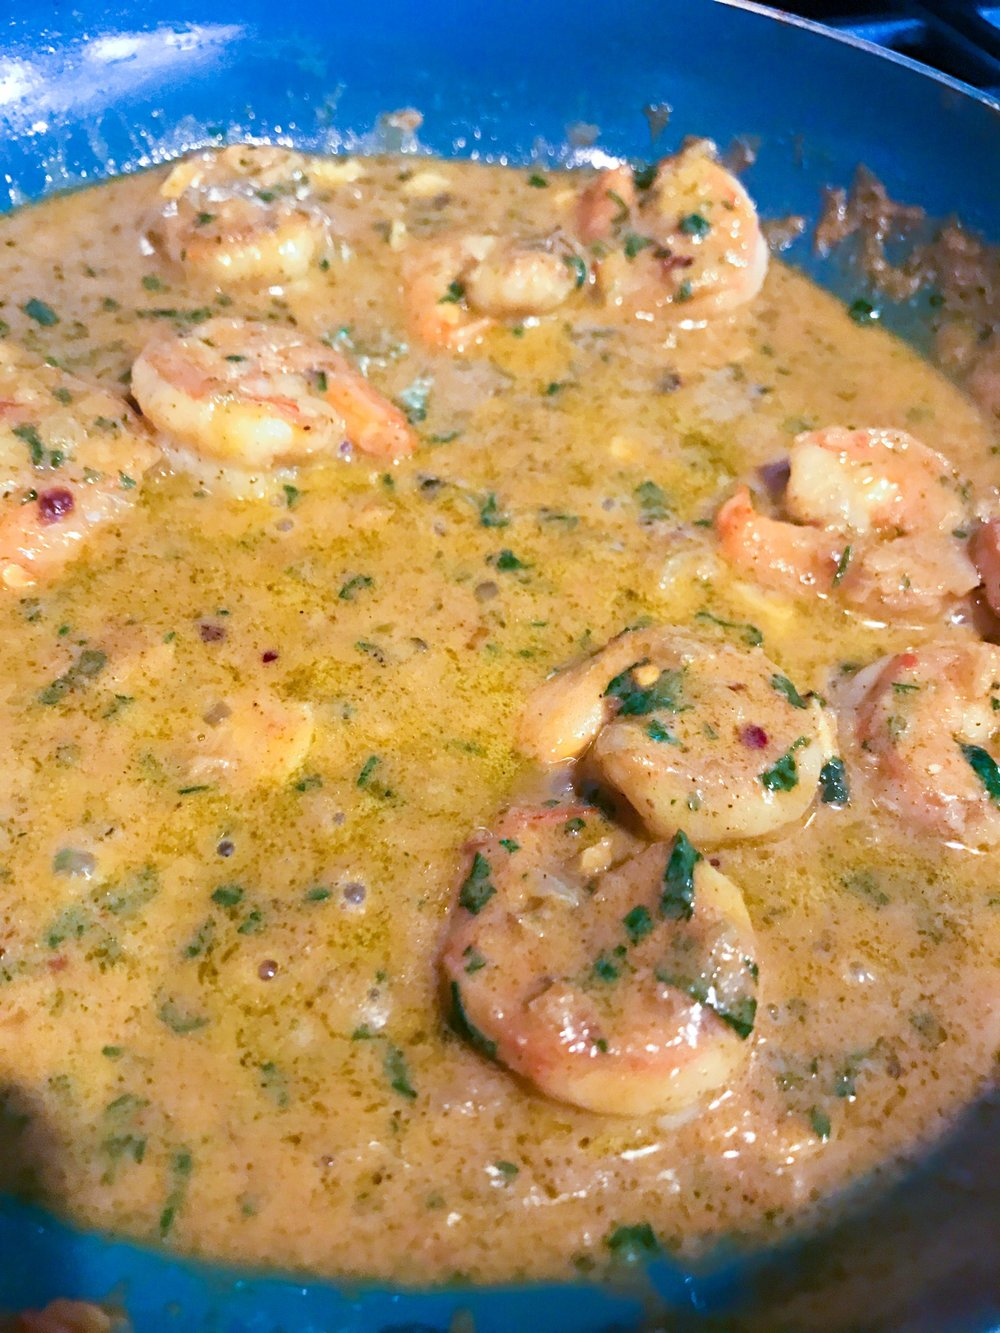 Shrimp simmering in sauce. Letting the sauce thicken. *Homer drools*